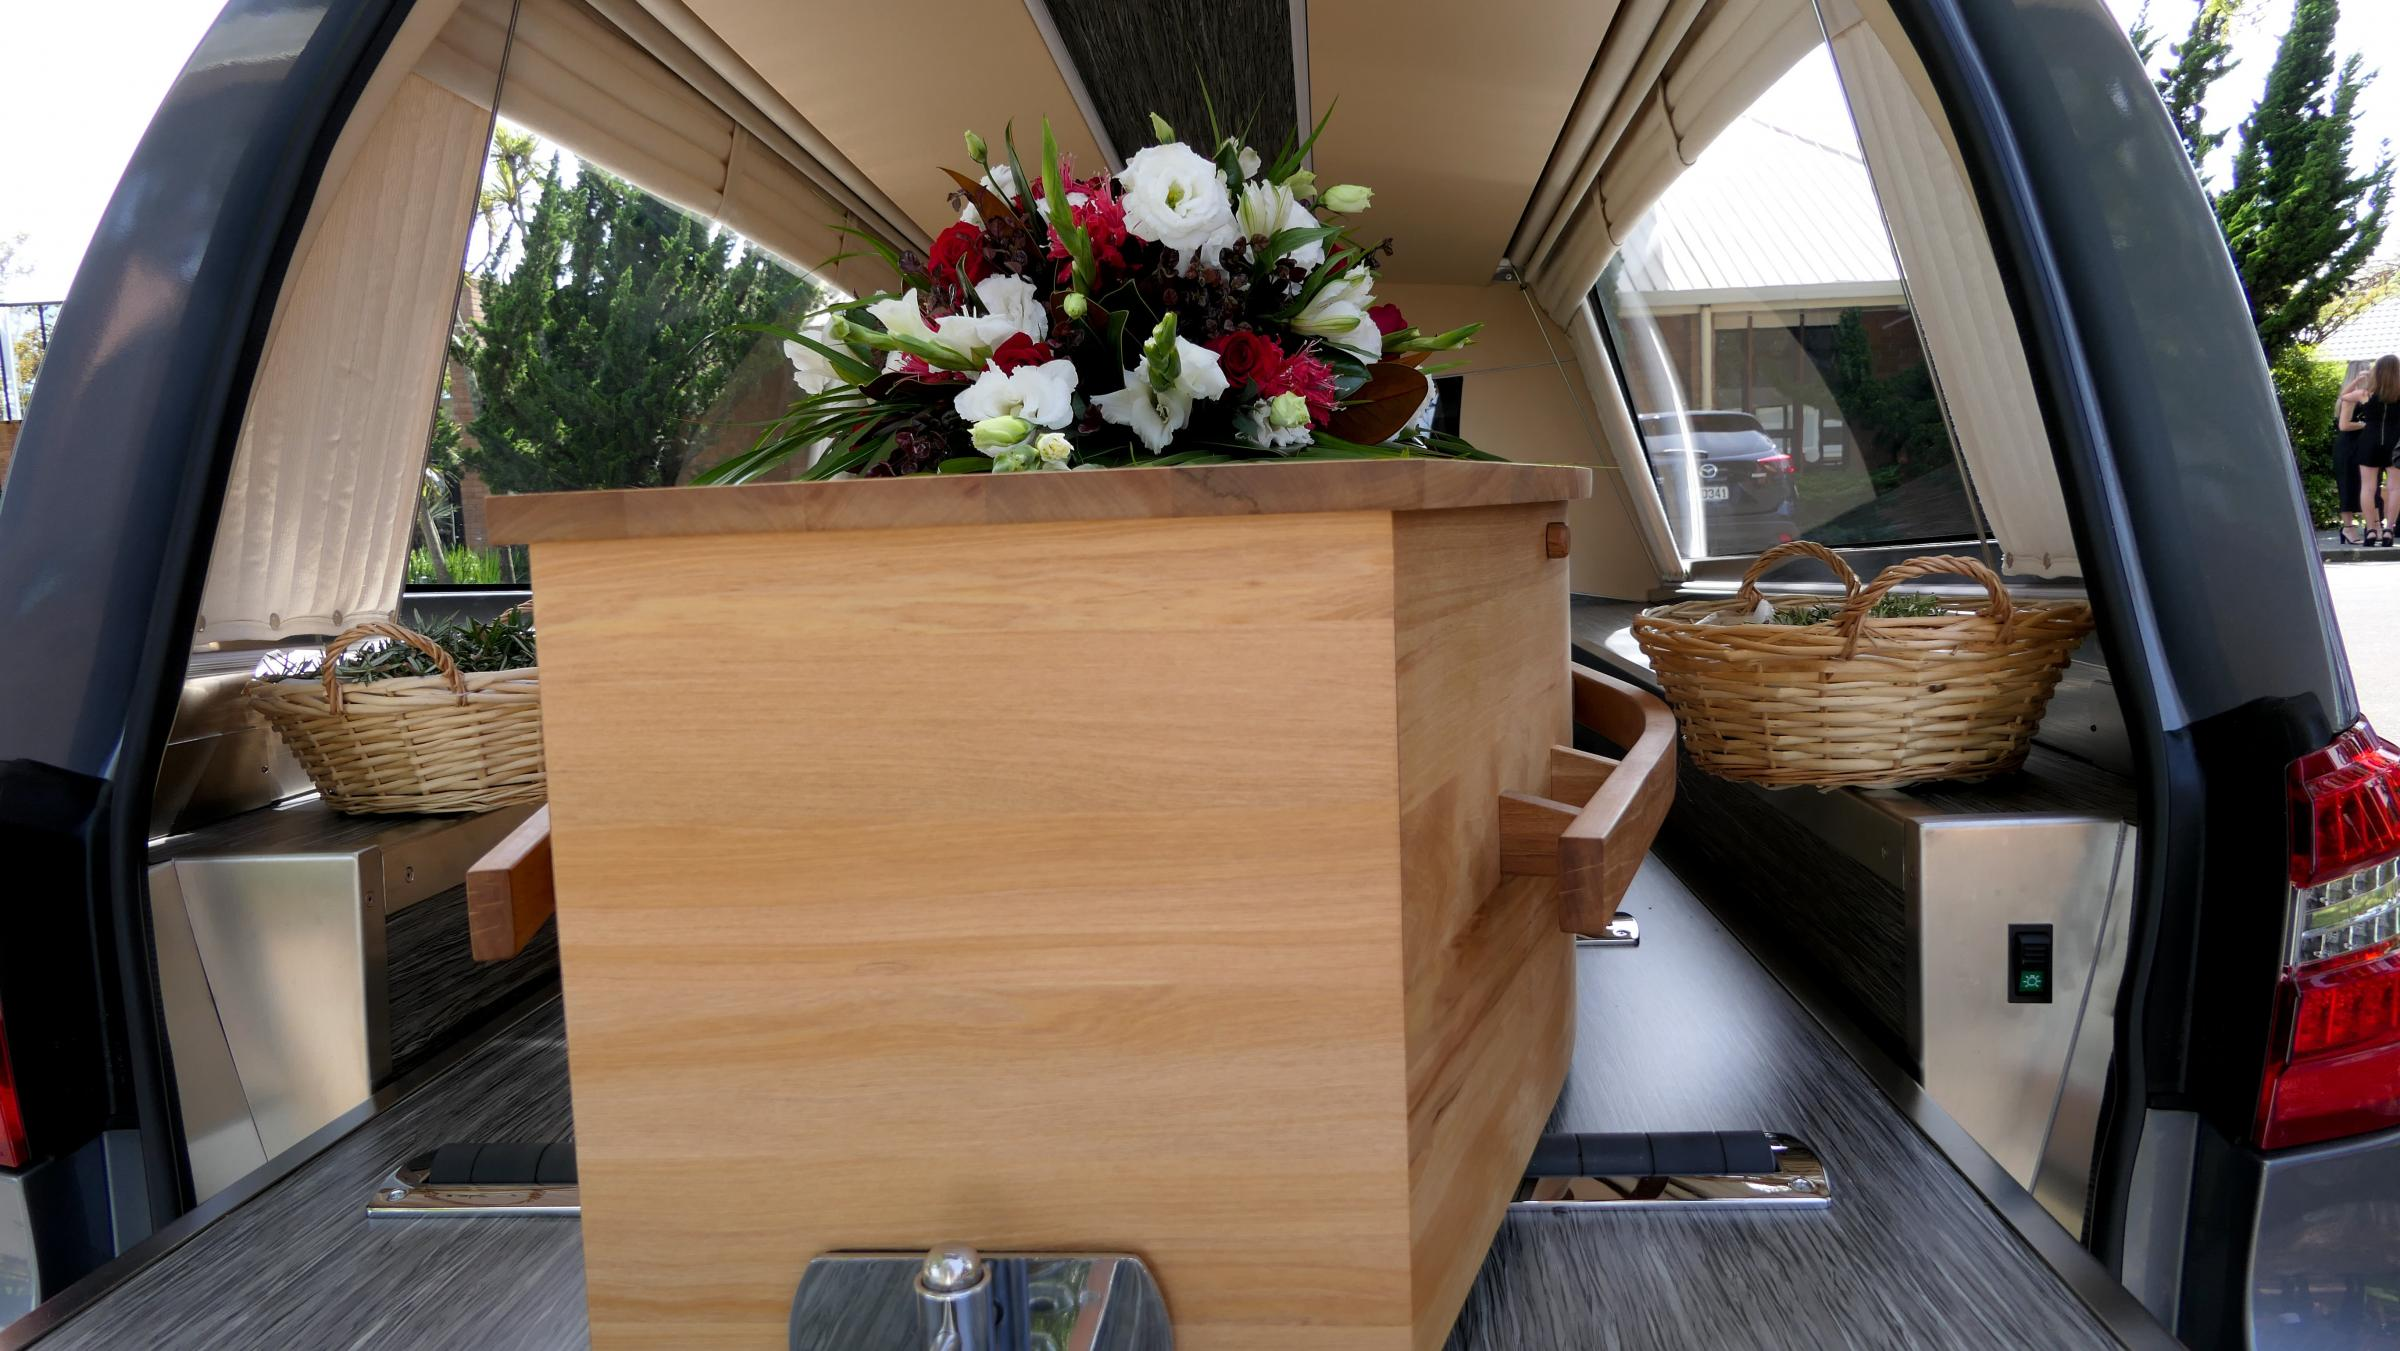 closeup shot of a colorful casket in a hearse or chapel before funeral or burial at cemetery.; Shutterstock ID 1062486785.